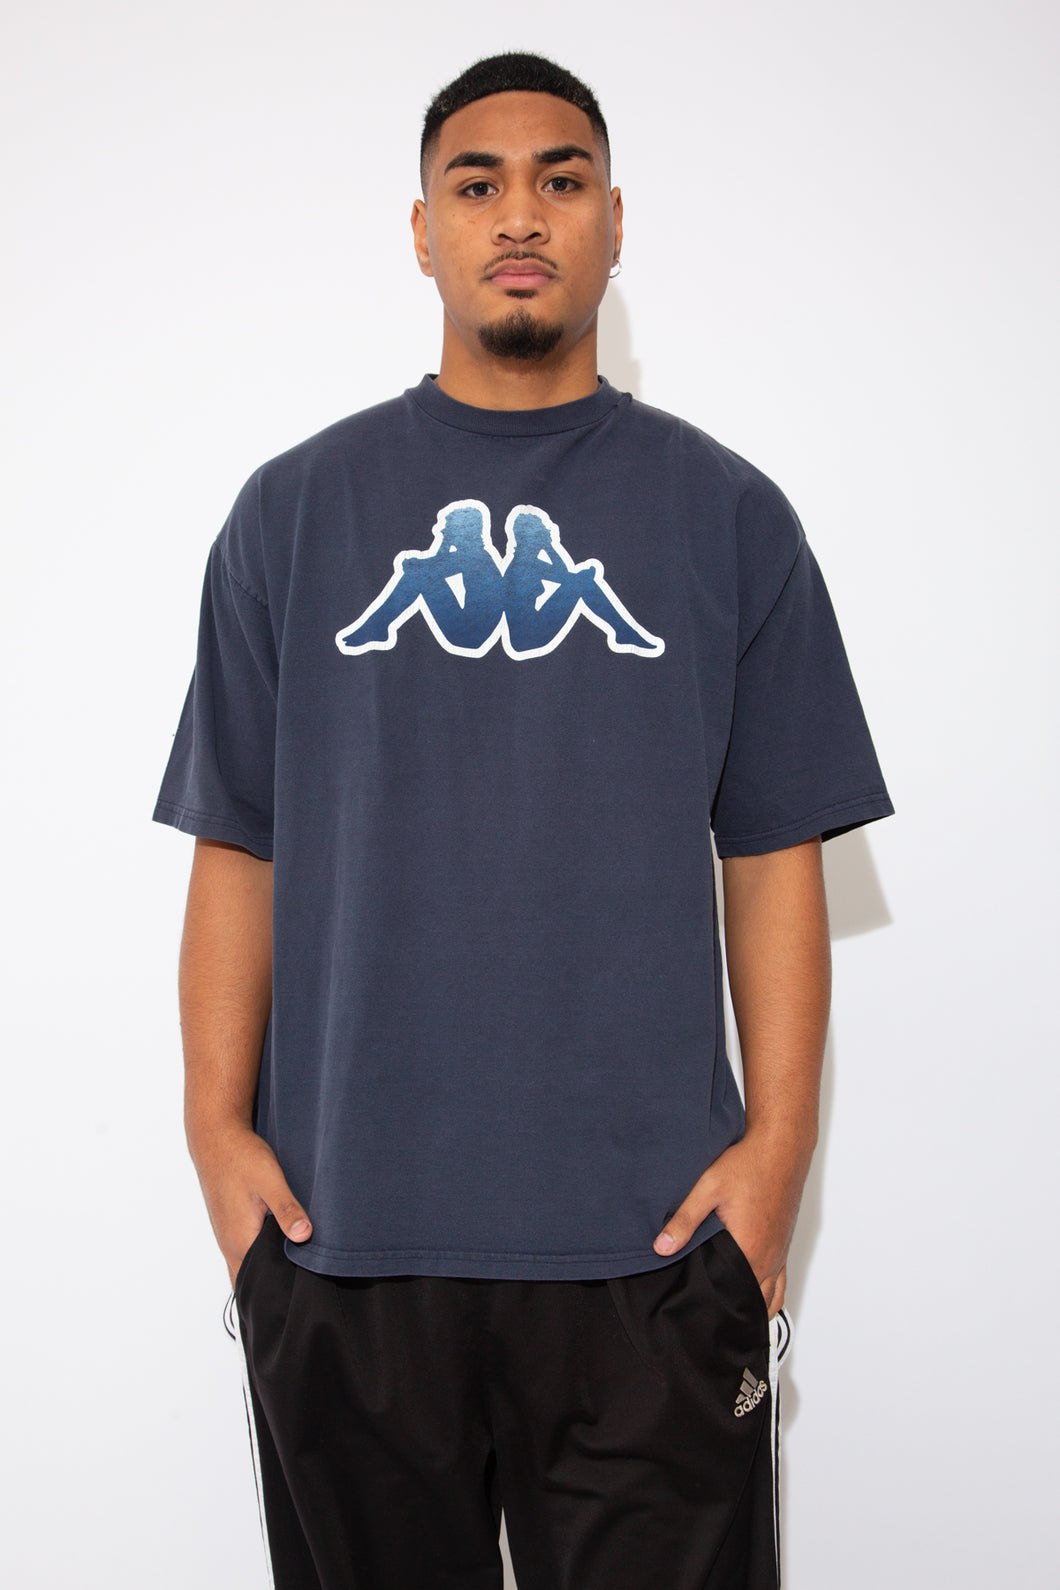 model is wearing a navy blue top that fits slightly oversized on the model, the tee features the Kappa logo on the center which has slightly cracked.